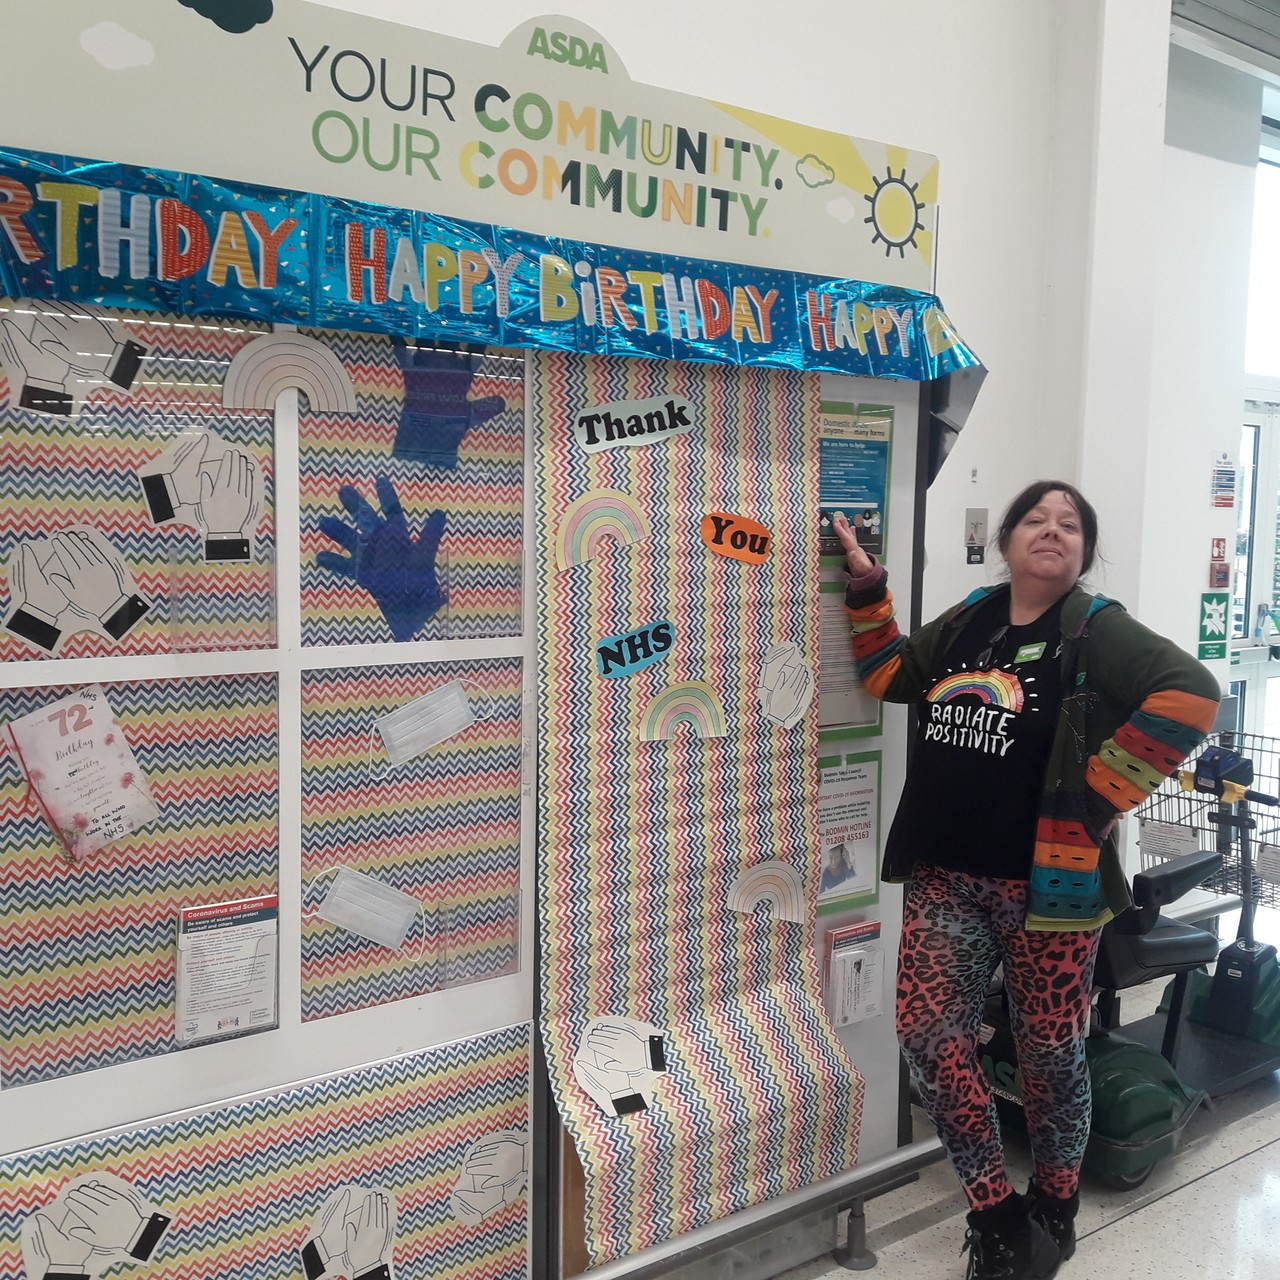 Happy birthday to the NHS | Asda Bodmin